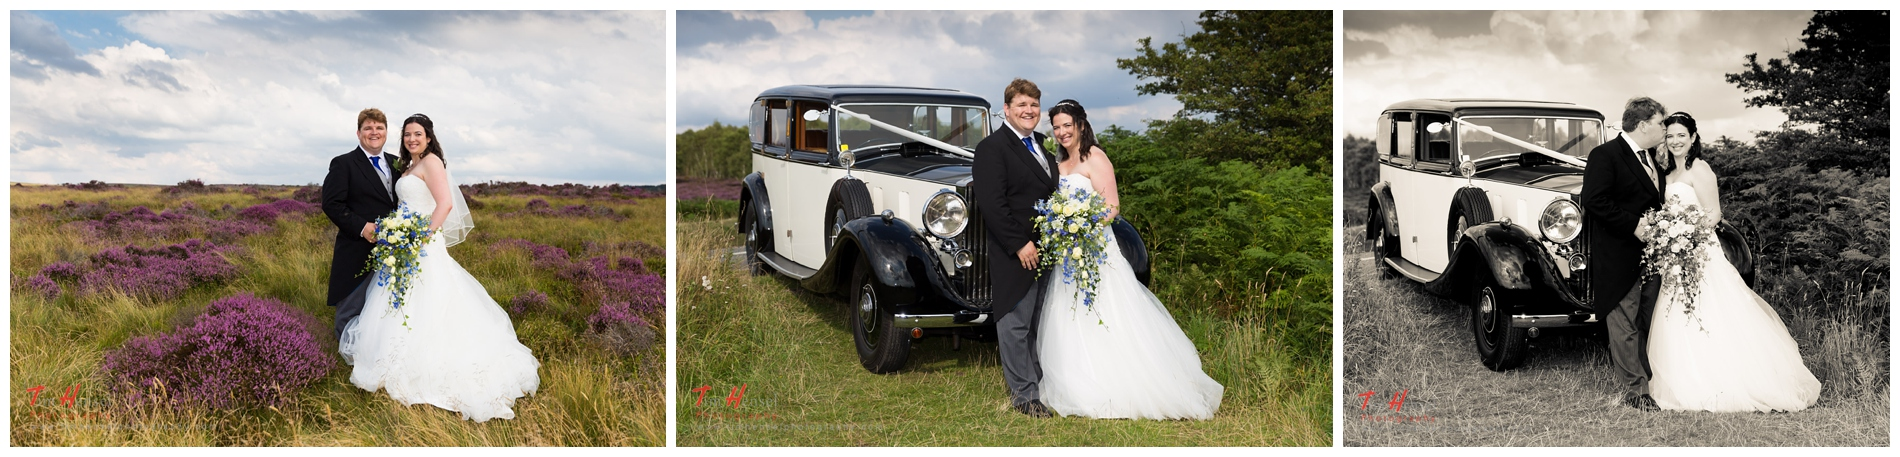 derbyshire wedding photography with a vintage rolls royce